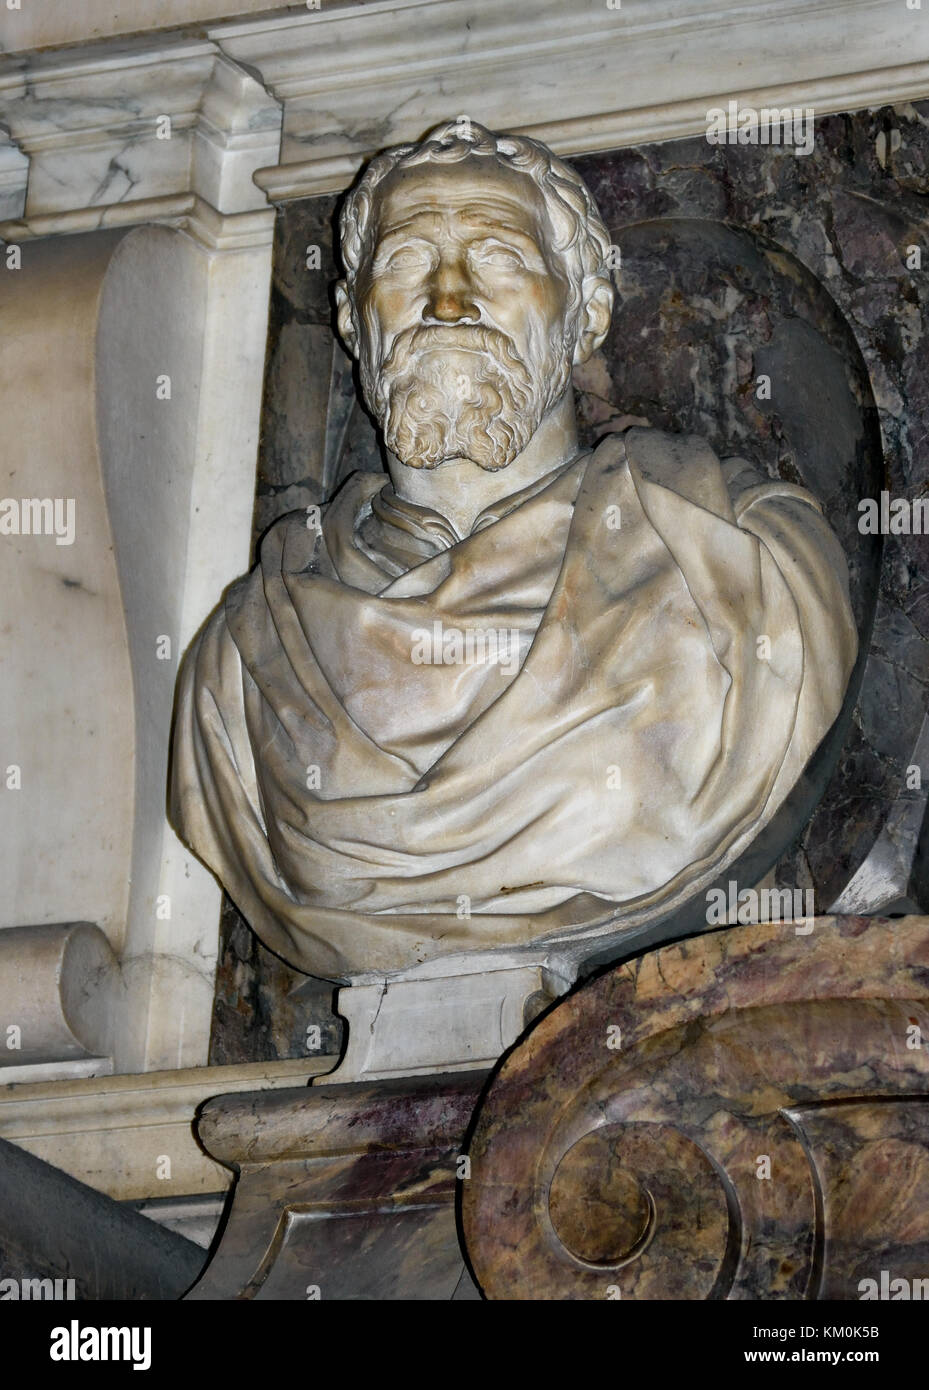 Bust of Michelangelo - Michelangelo's tomb Santa Croce ( The Basilica di Santa Croce is the principal Franciscan - Stock Image